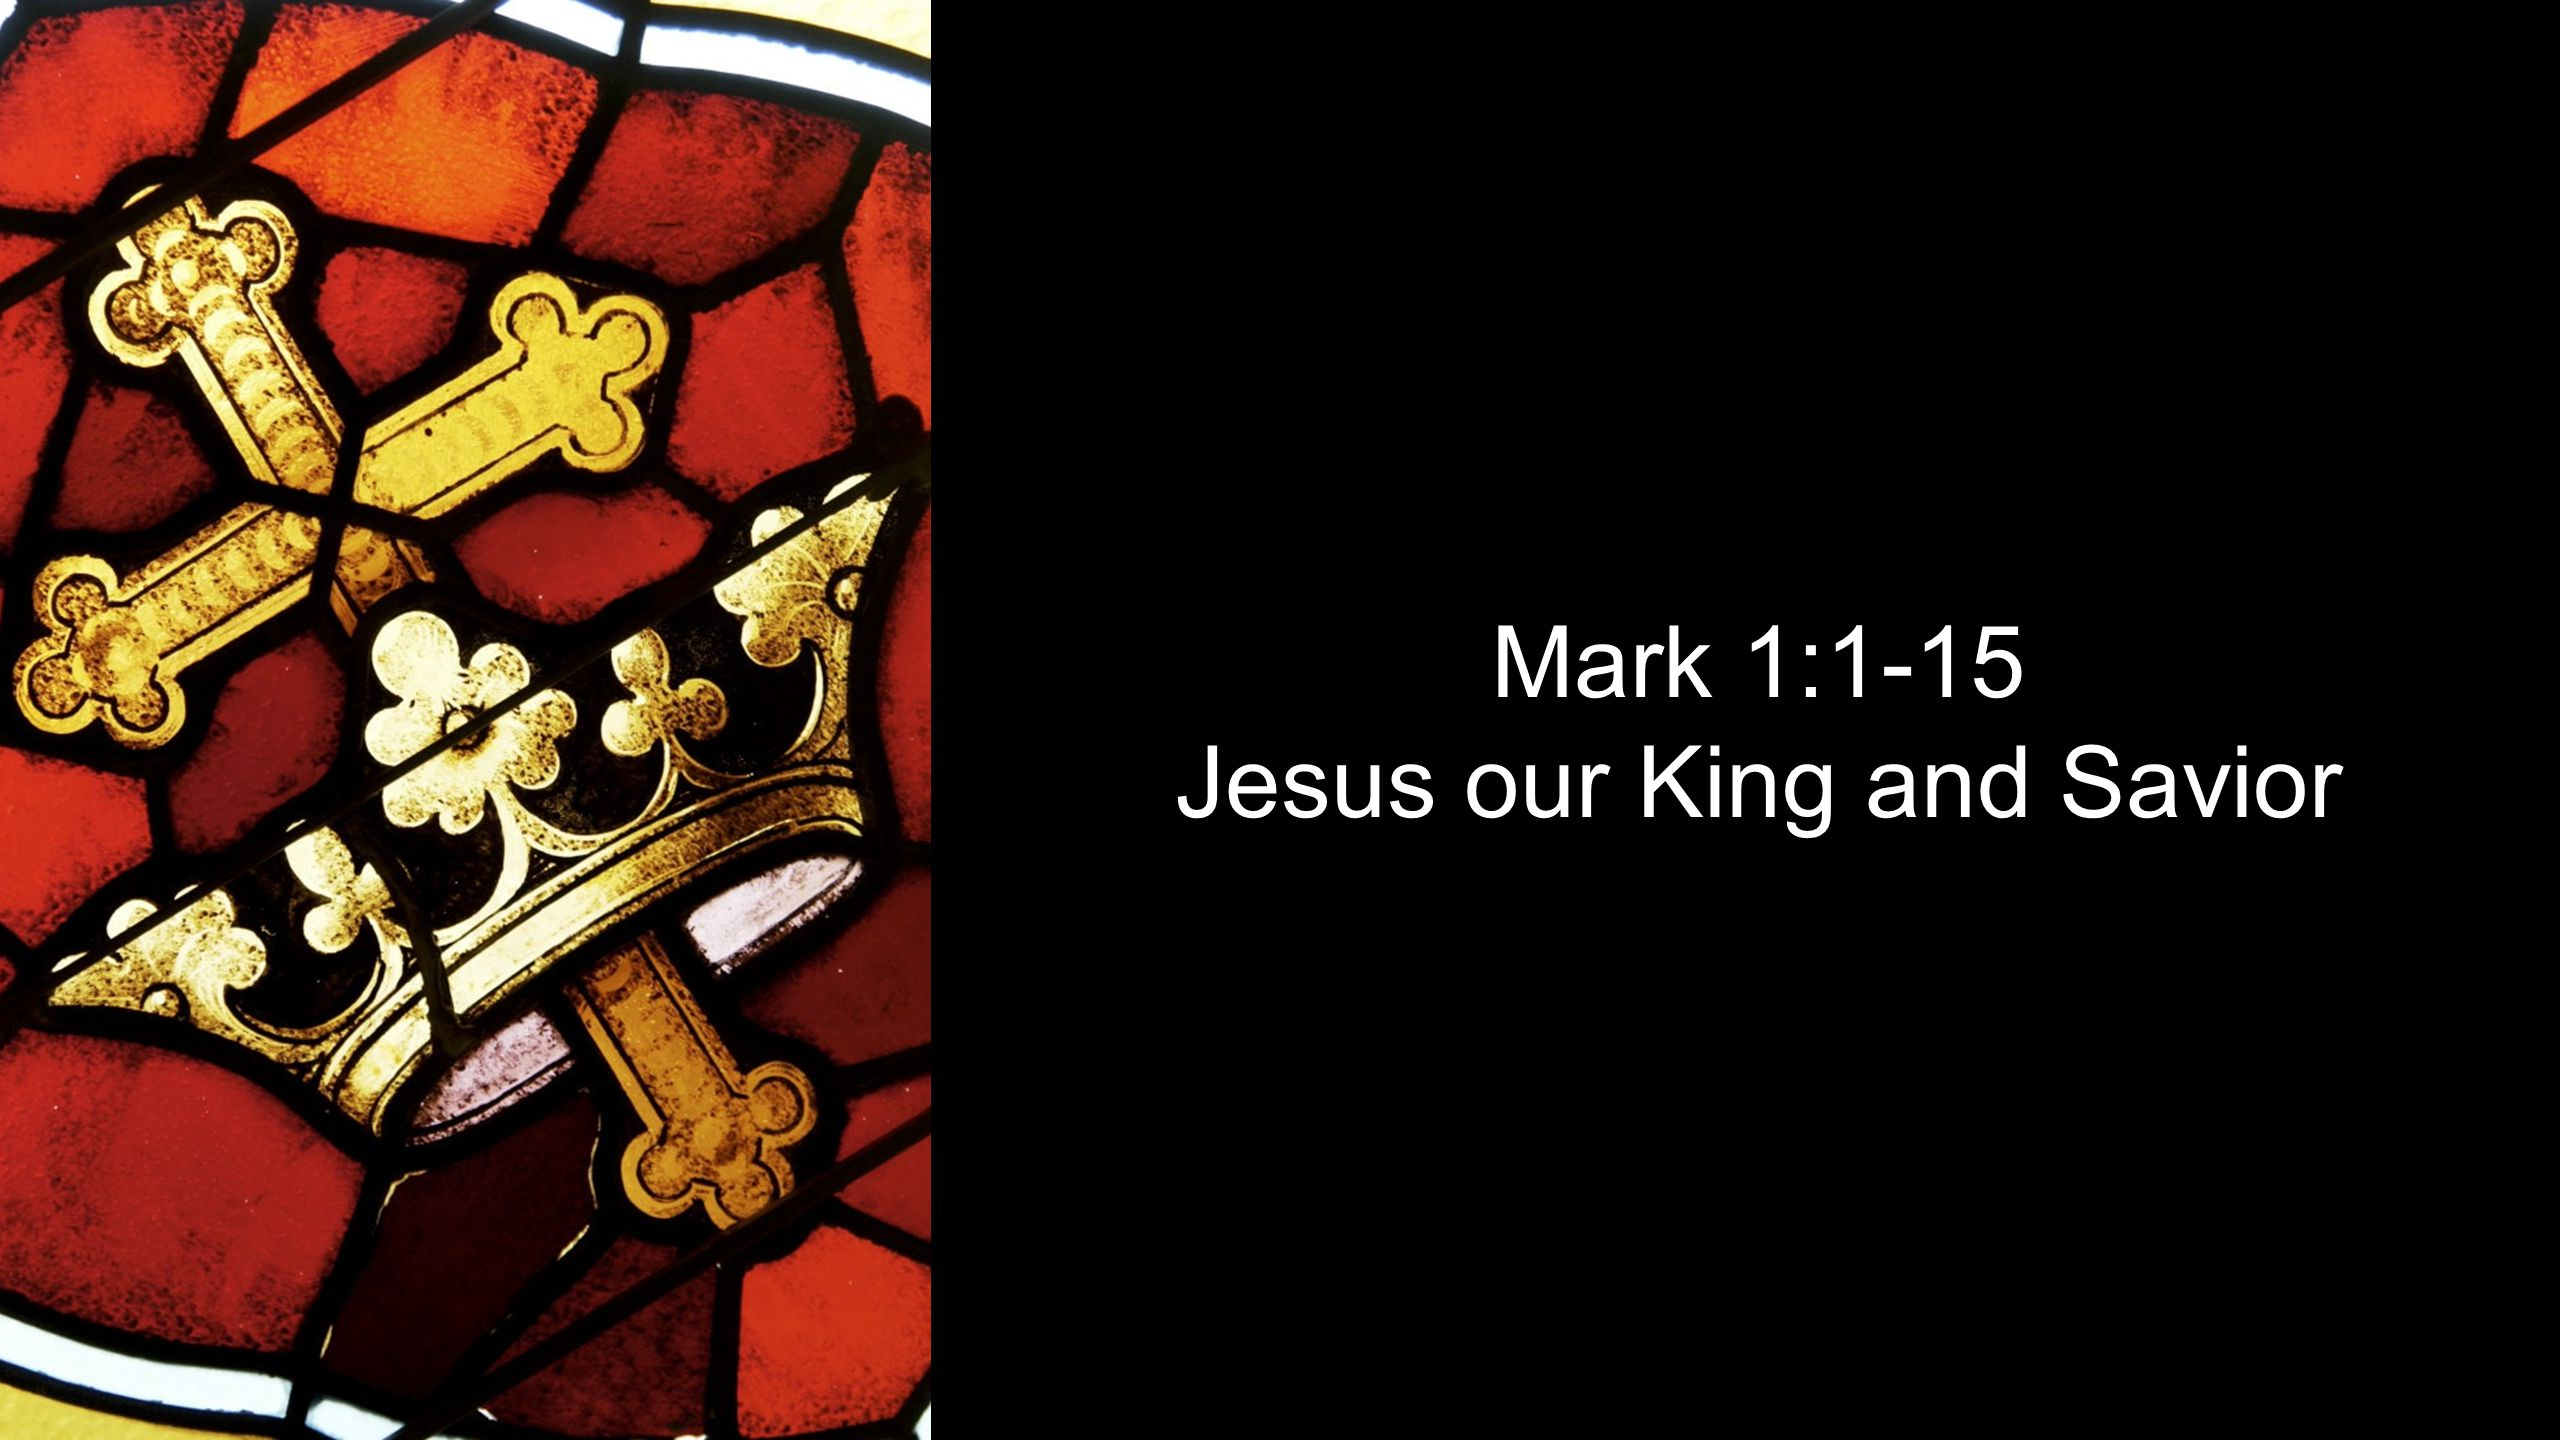 Mark 1:1-15 Jesus our King and Savior